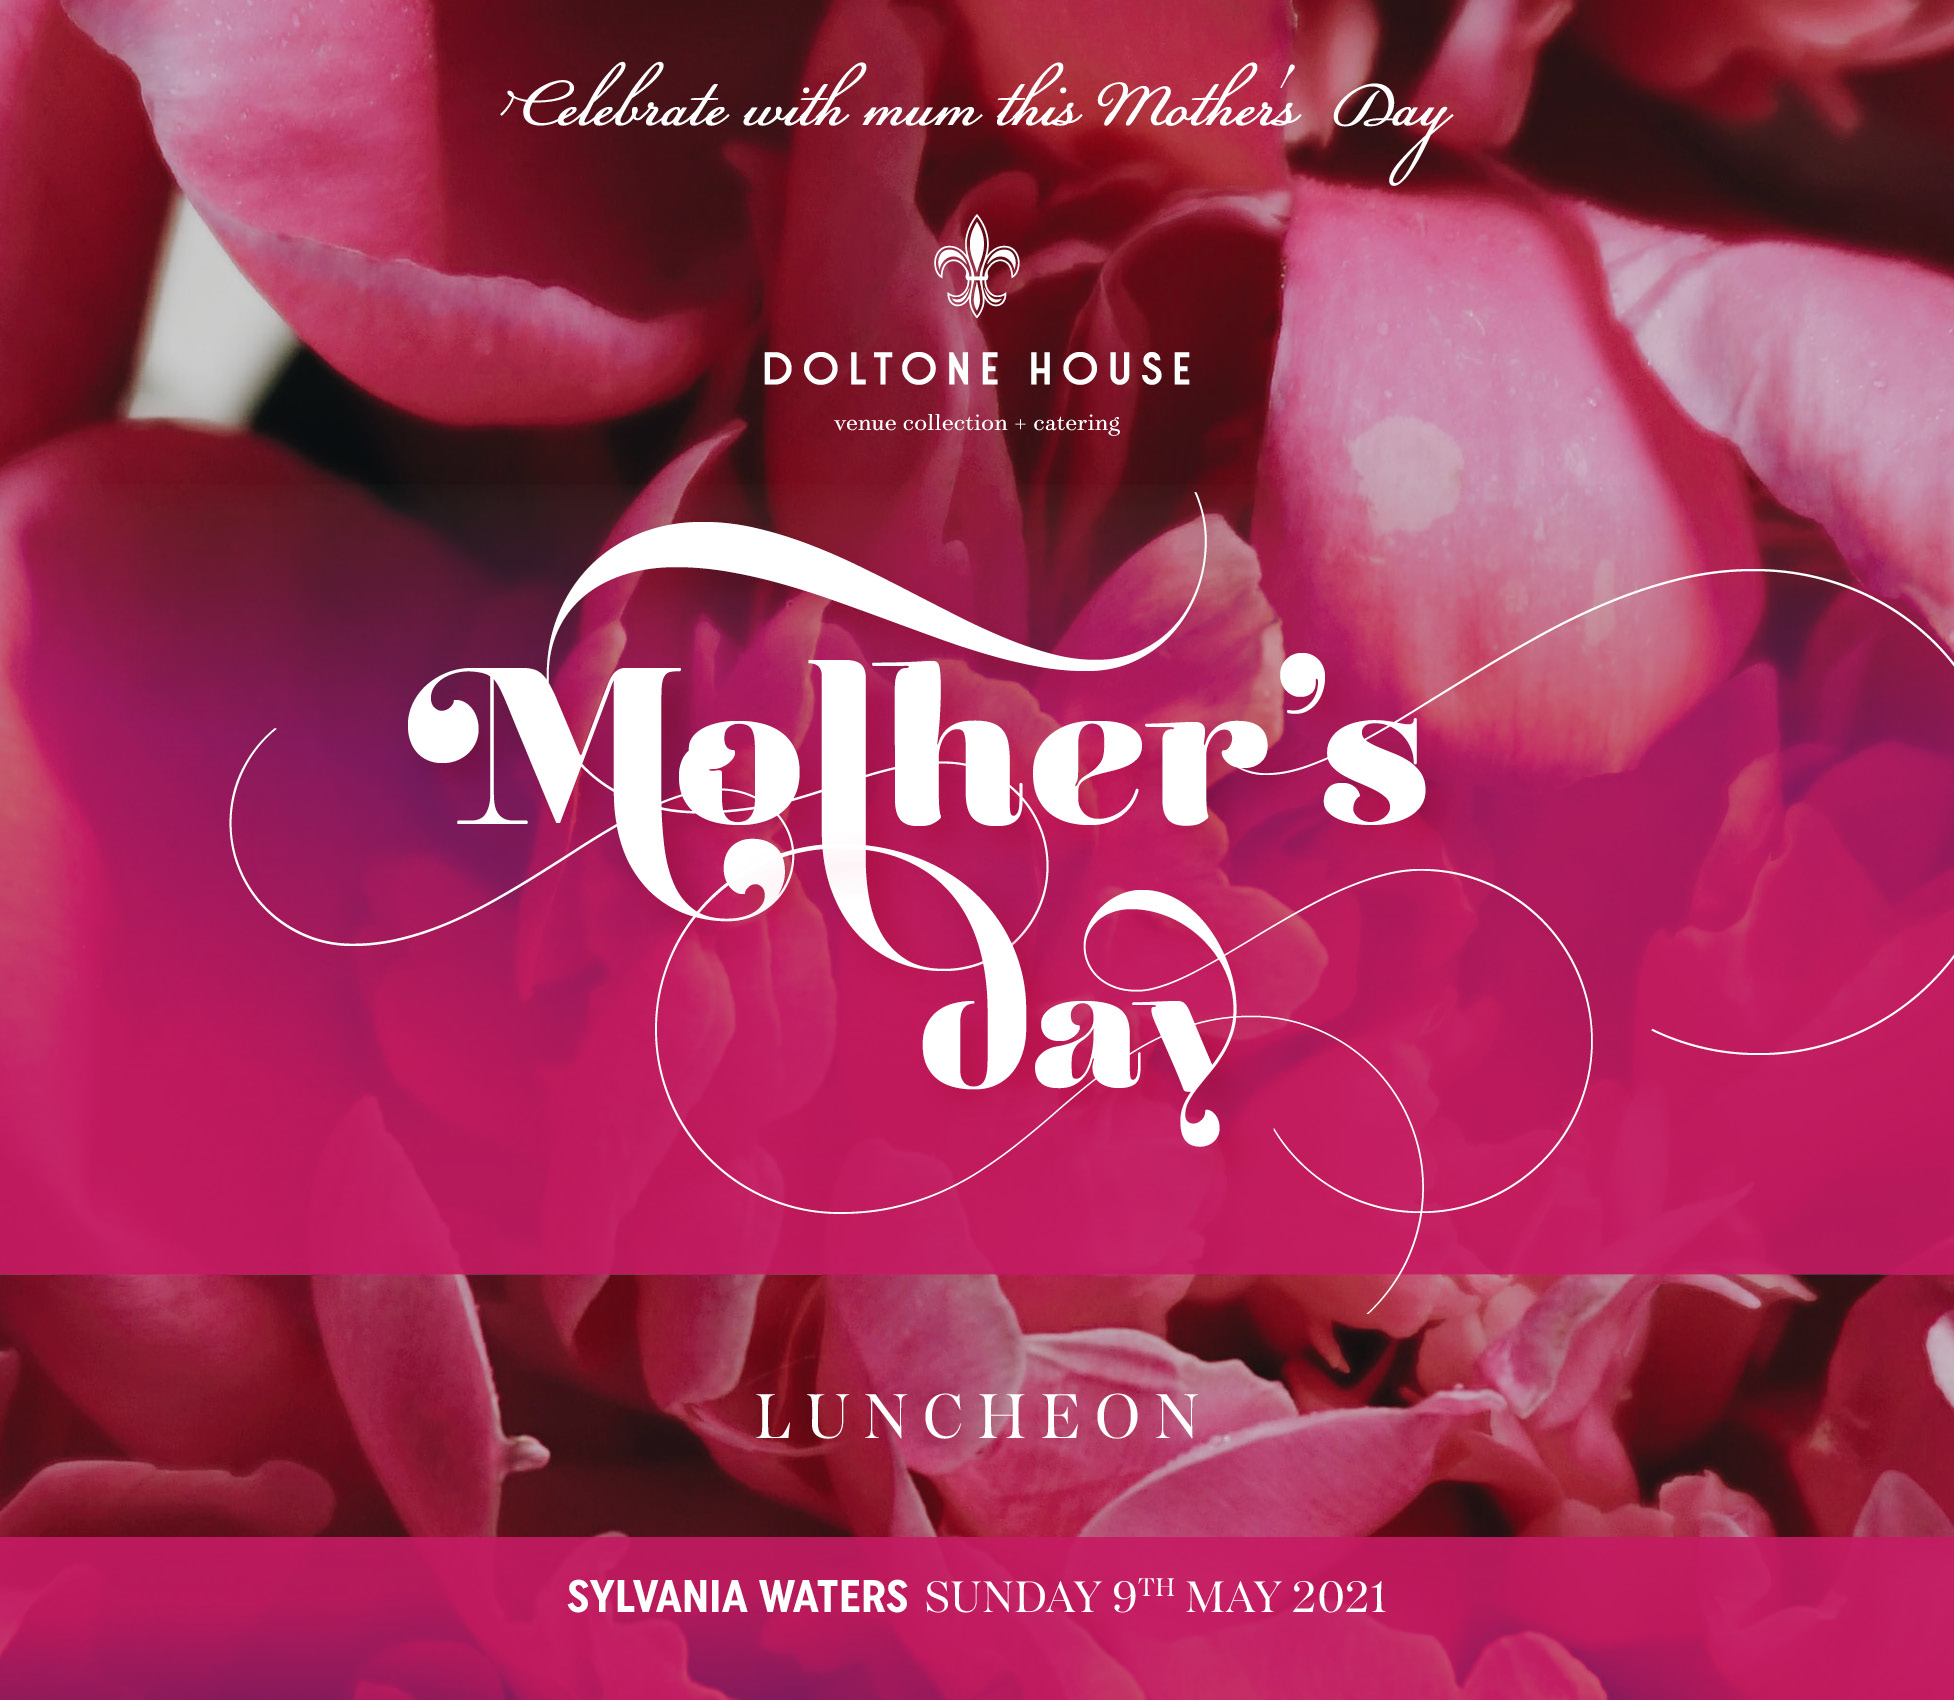 Tickets for Mother's Day Luncheon 2021 @ Sylvania Waters in Sylvania Waters from Ticketbooth